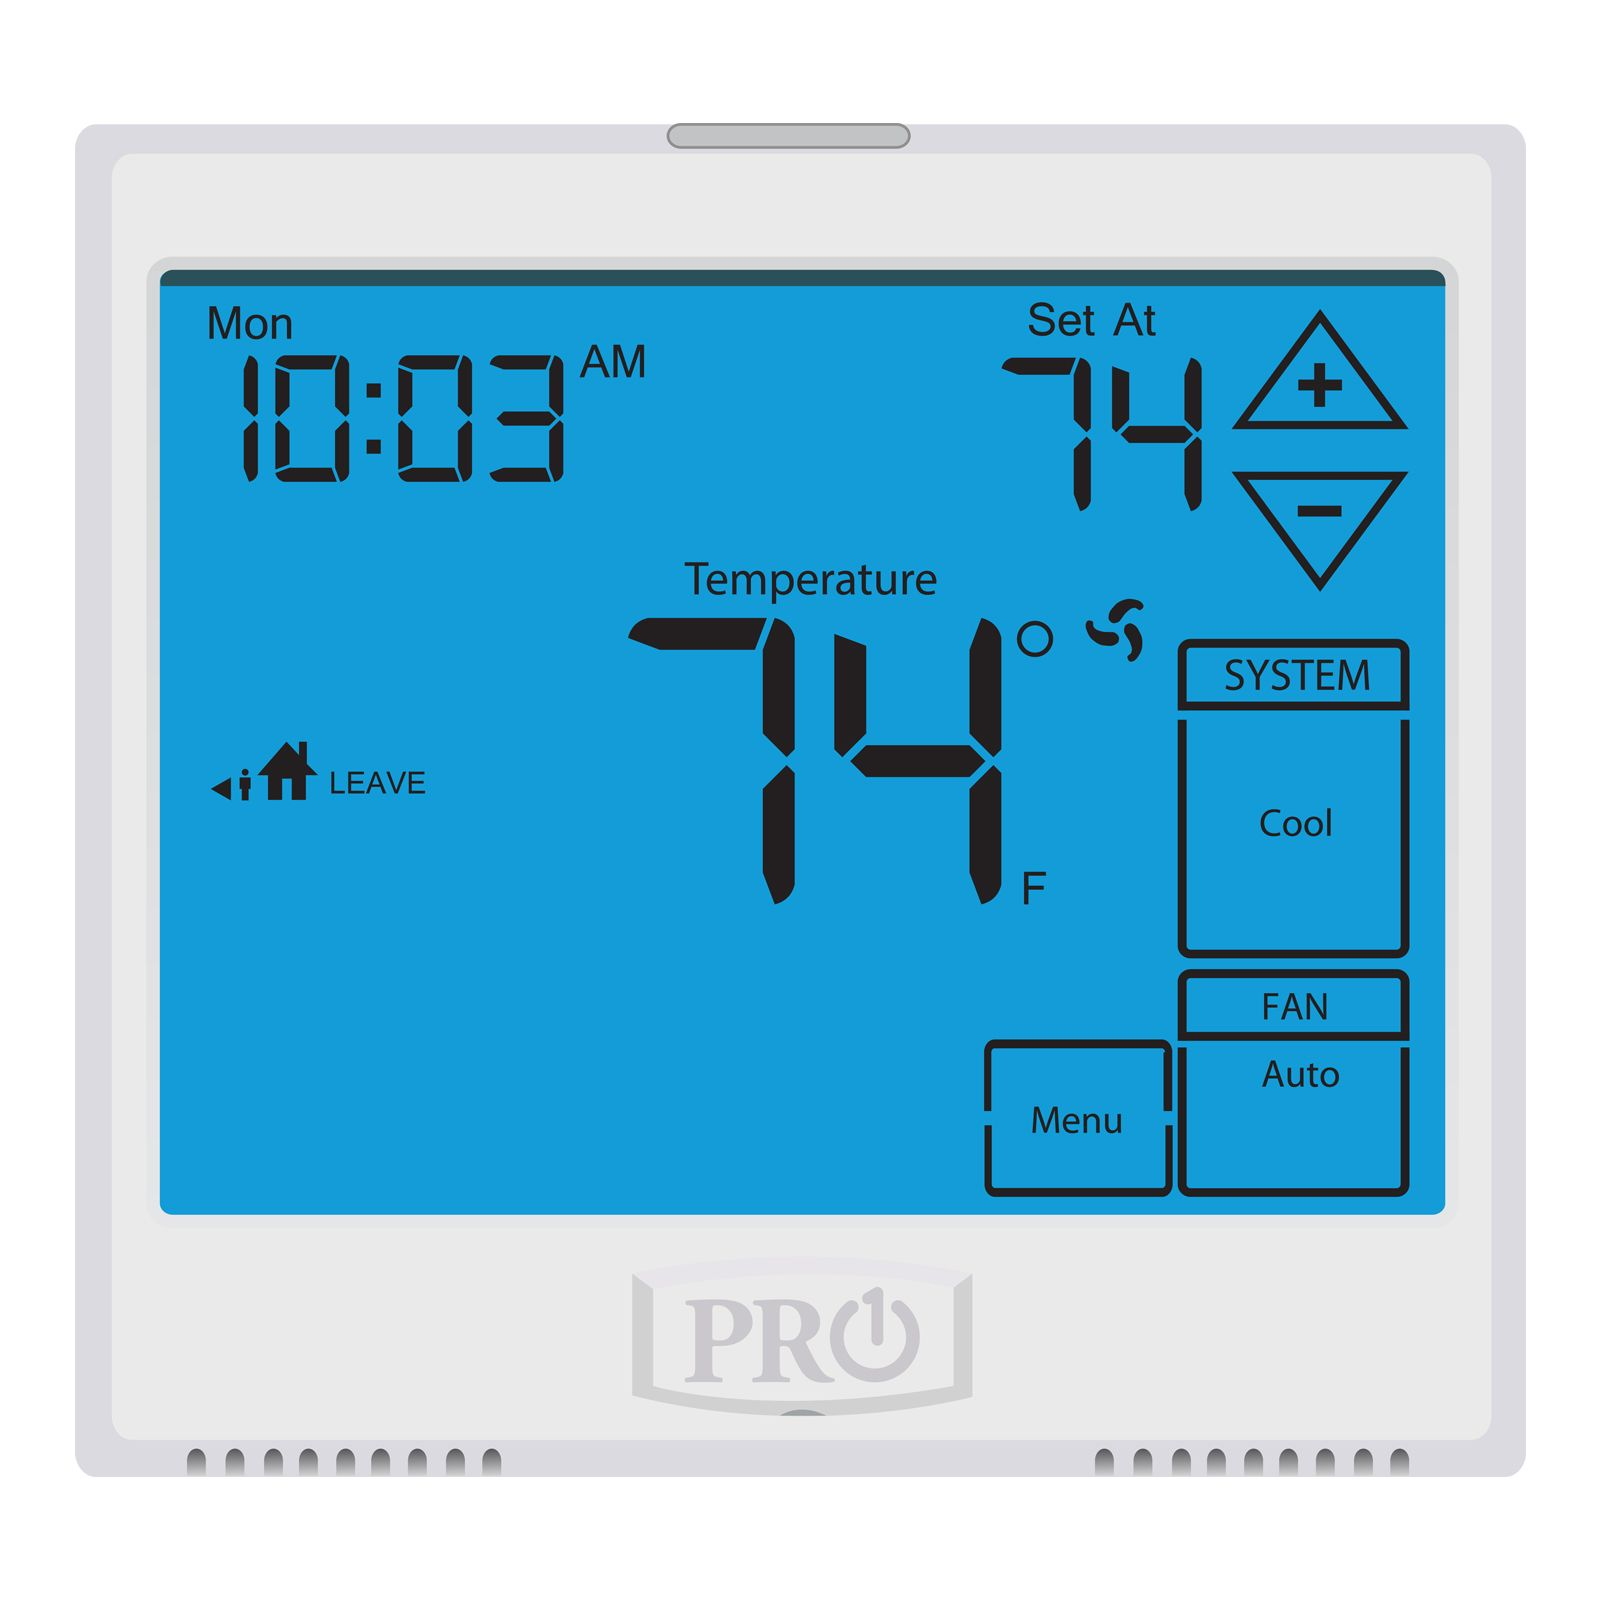 Pro1 Z955W - Wireless Zoning Master - 3H/2C, 5+1+1, 7D or Non-programmable.